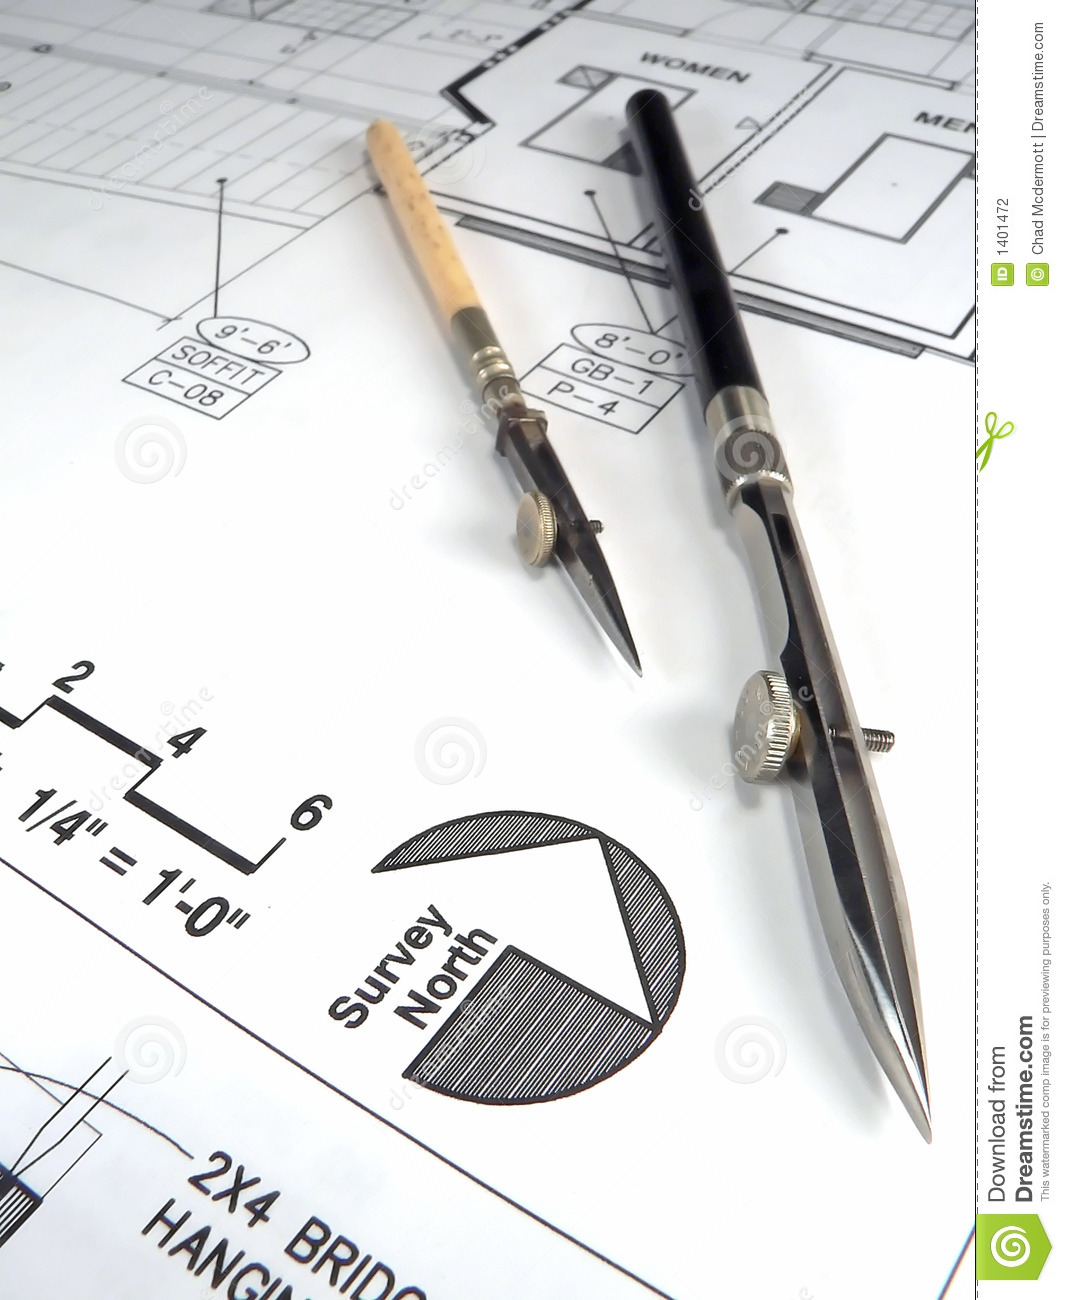 Architect 39 S Tools And Plans Stock Photography Image 1401472